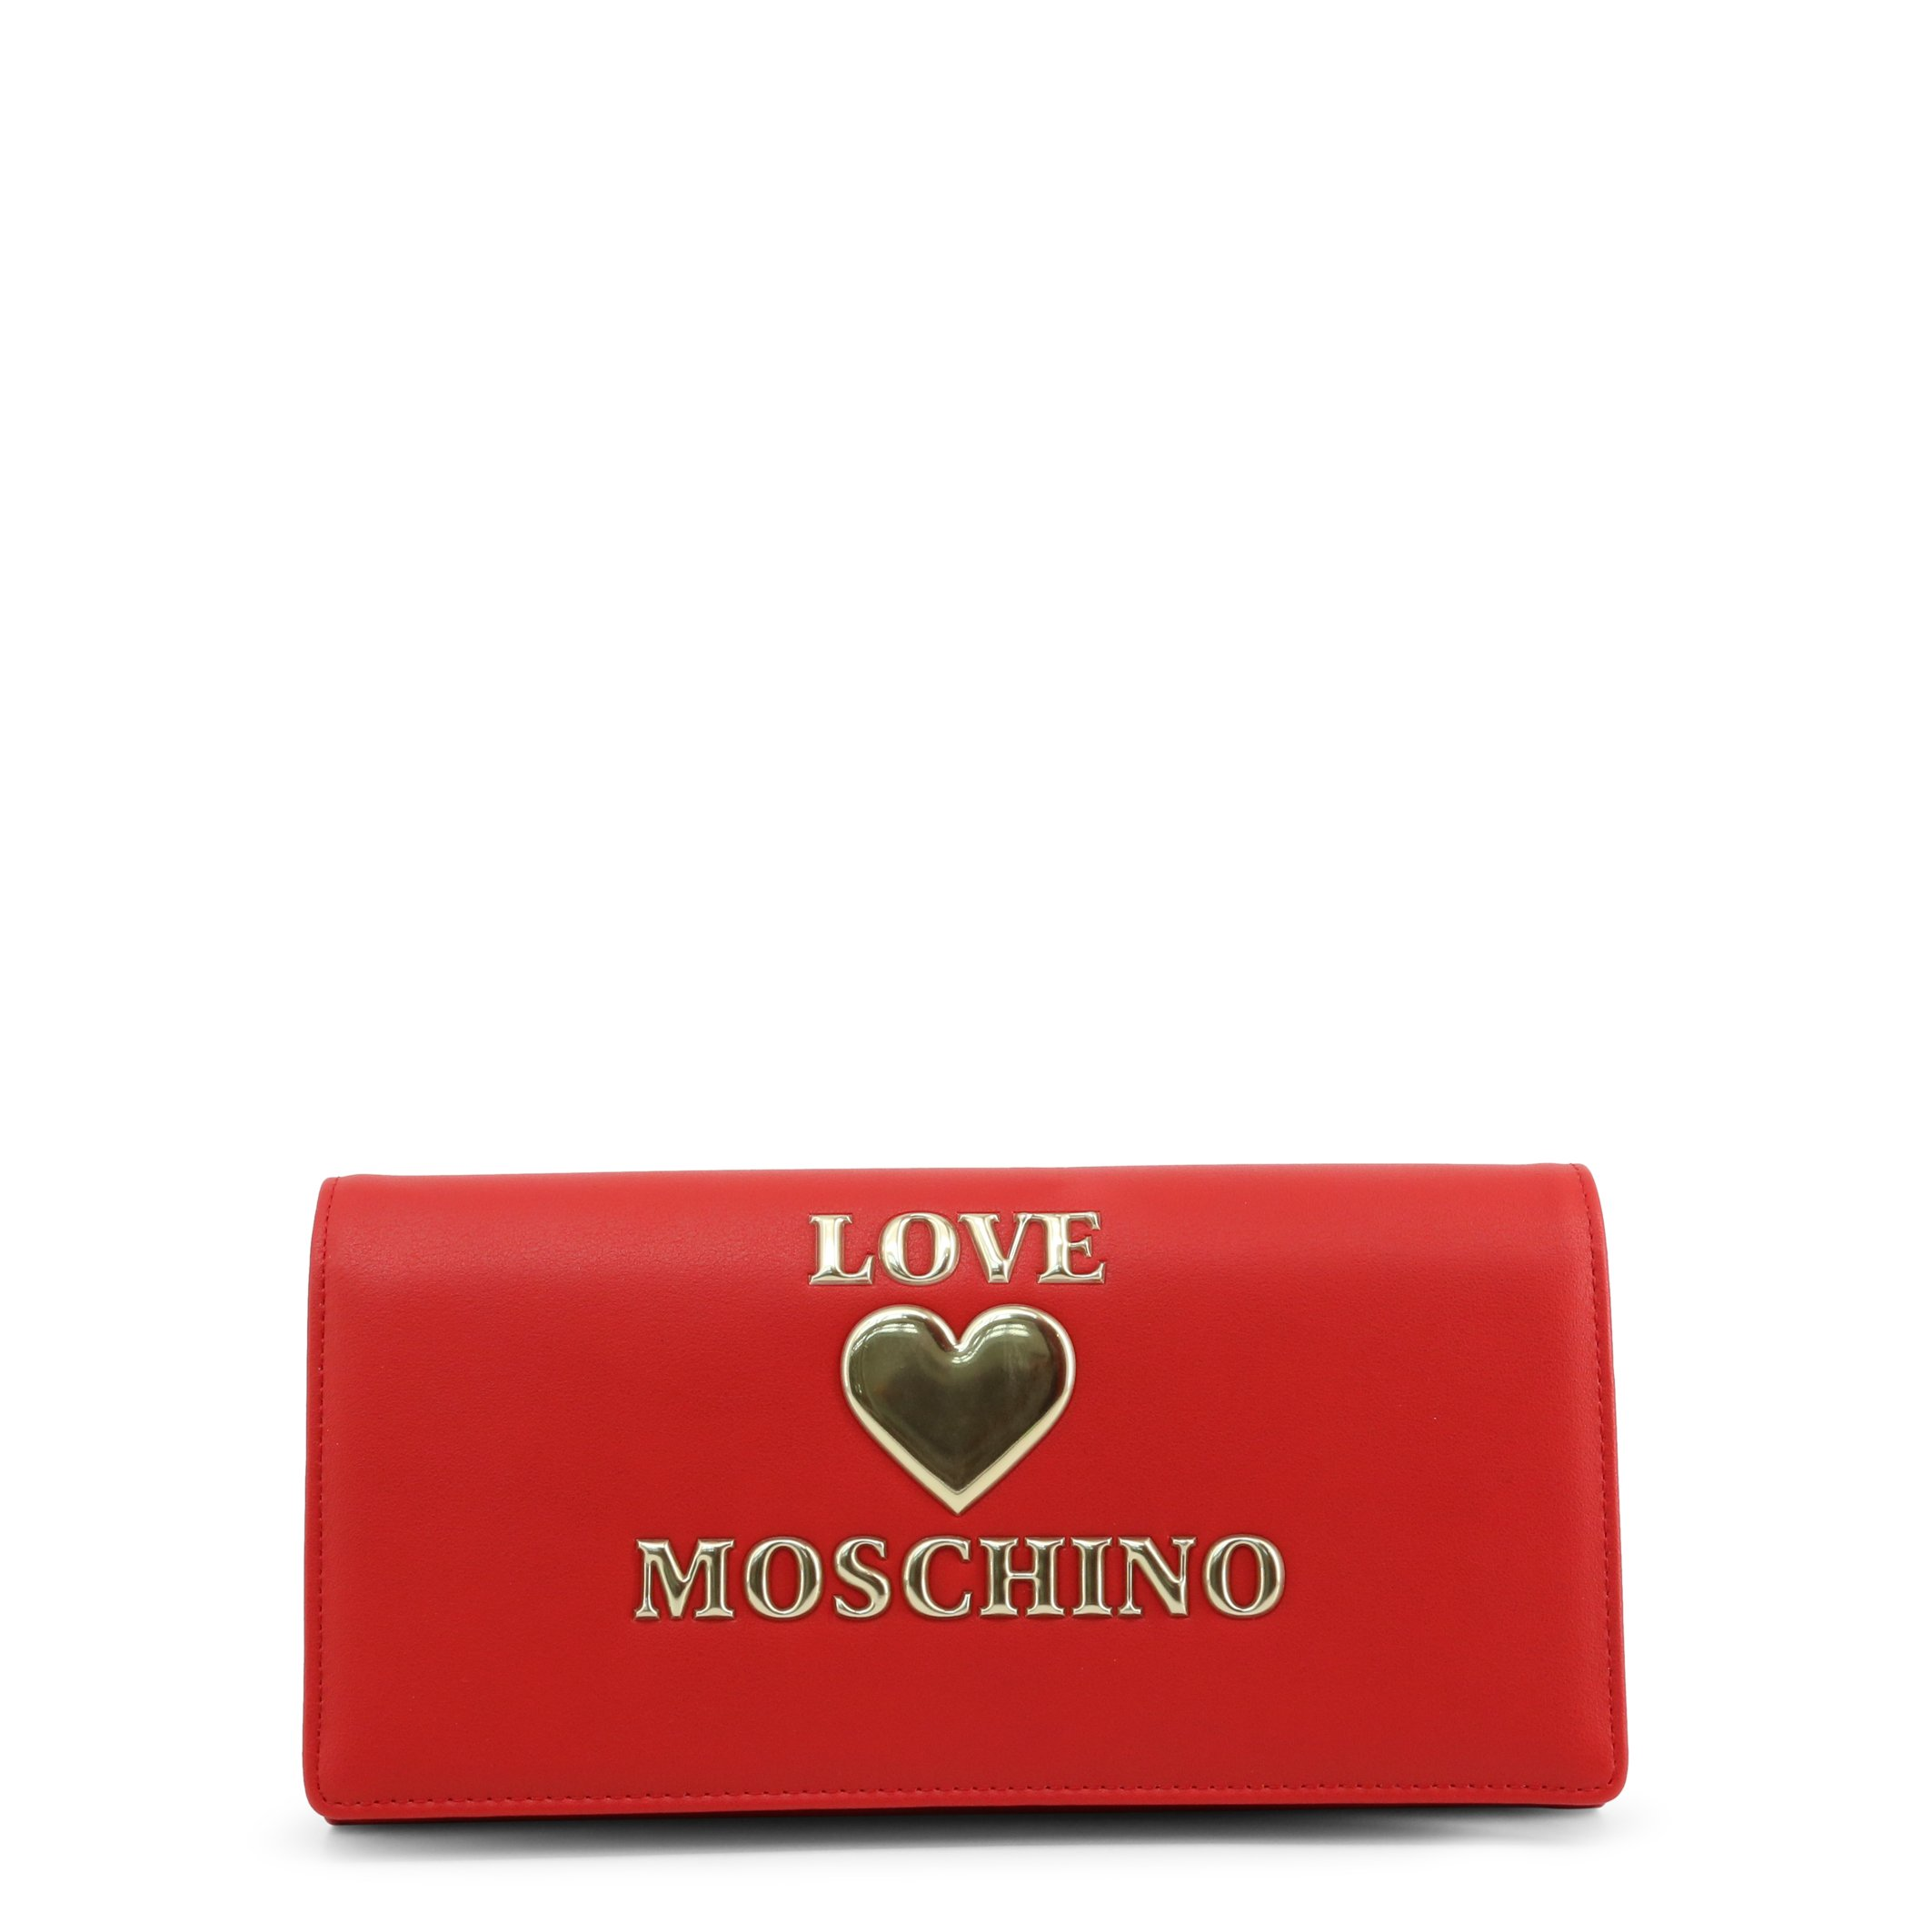 Love Moschino Women's Clutch Bag Various Colours JC5612PP1BLE - red NOSIZE